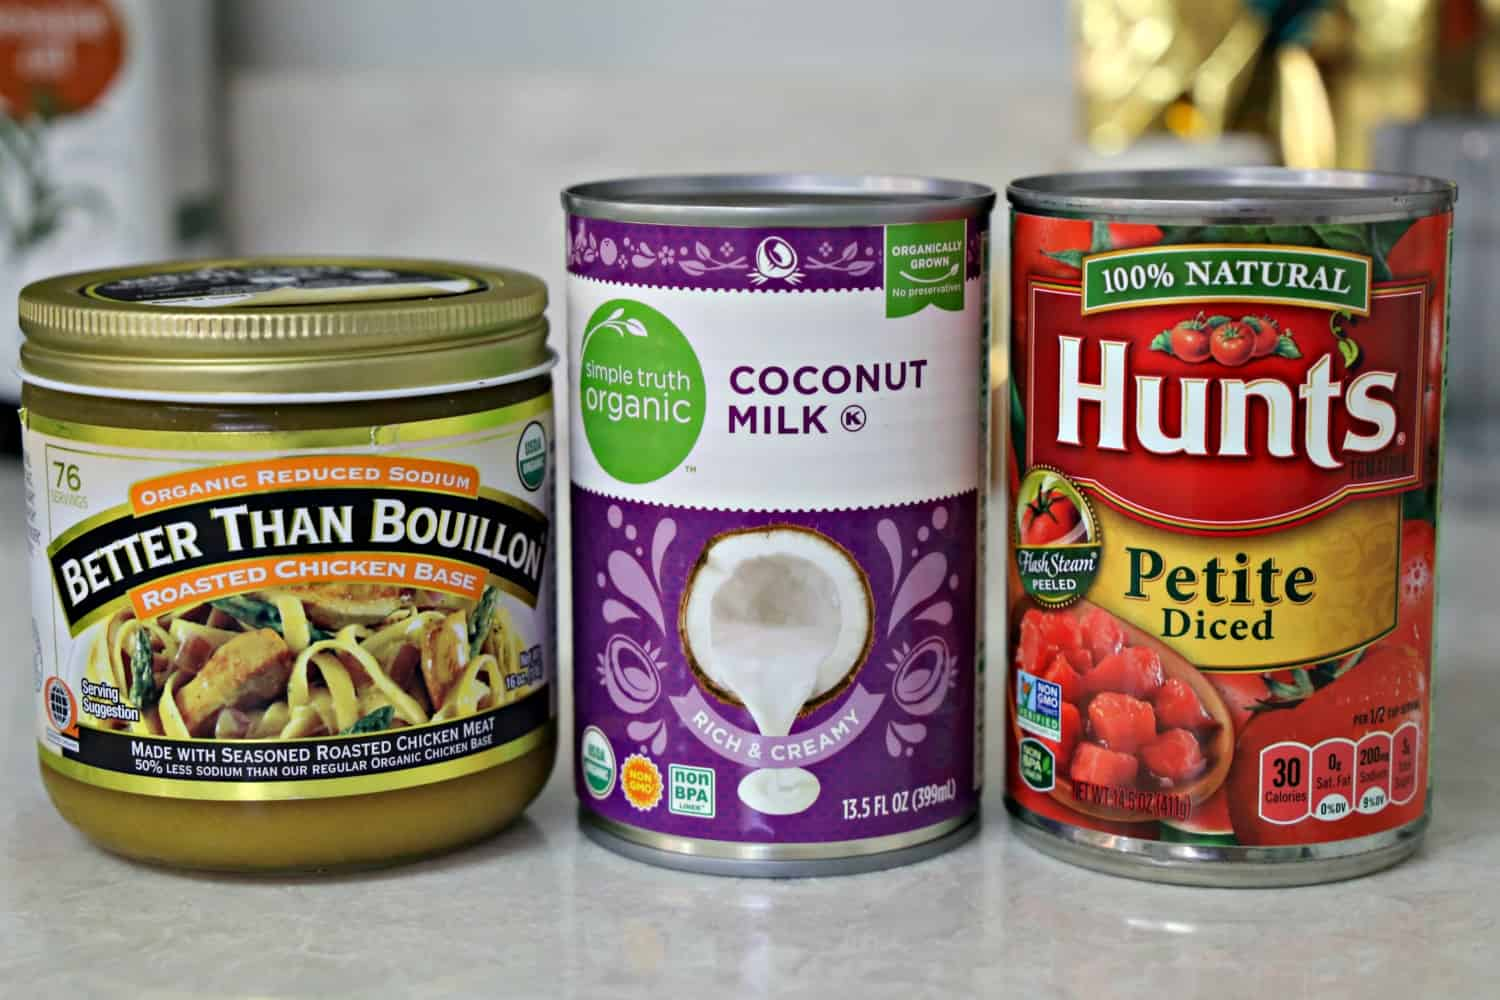 jar of Better Than Bouillon, can of coconut milk, and can of petite diced tomatoes